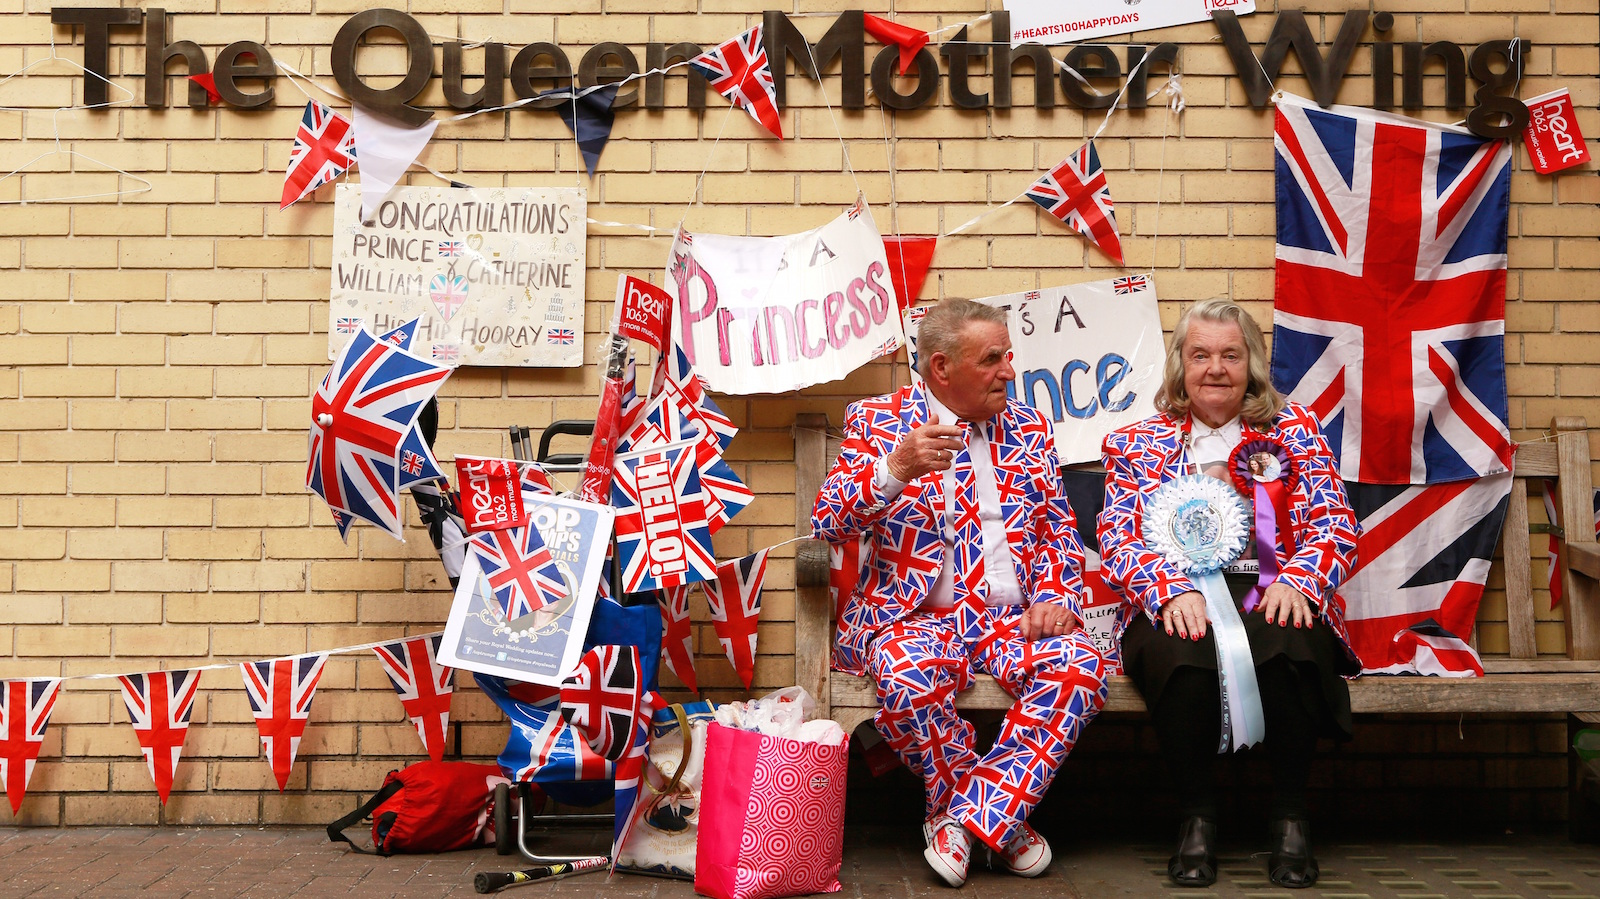 Royal enthusiasts sit outside the Lindo wing of St Mary's Hospital where Britain's Catherine, Duchess of Cambridge, is expected to give birth to her second child in the next few days, in central London, England, April 27, 2015.  REUTERS/Cathal McNaughton  TPX IMAGES OF THE DAY - RTX1AGKV